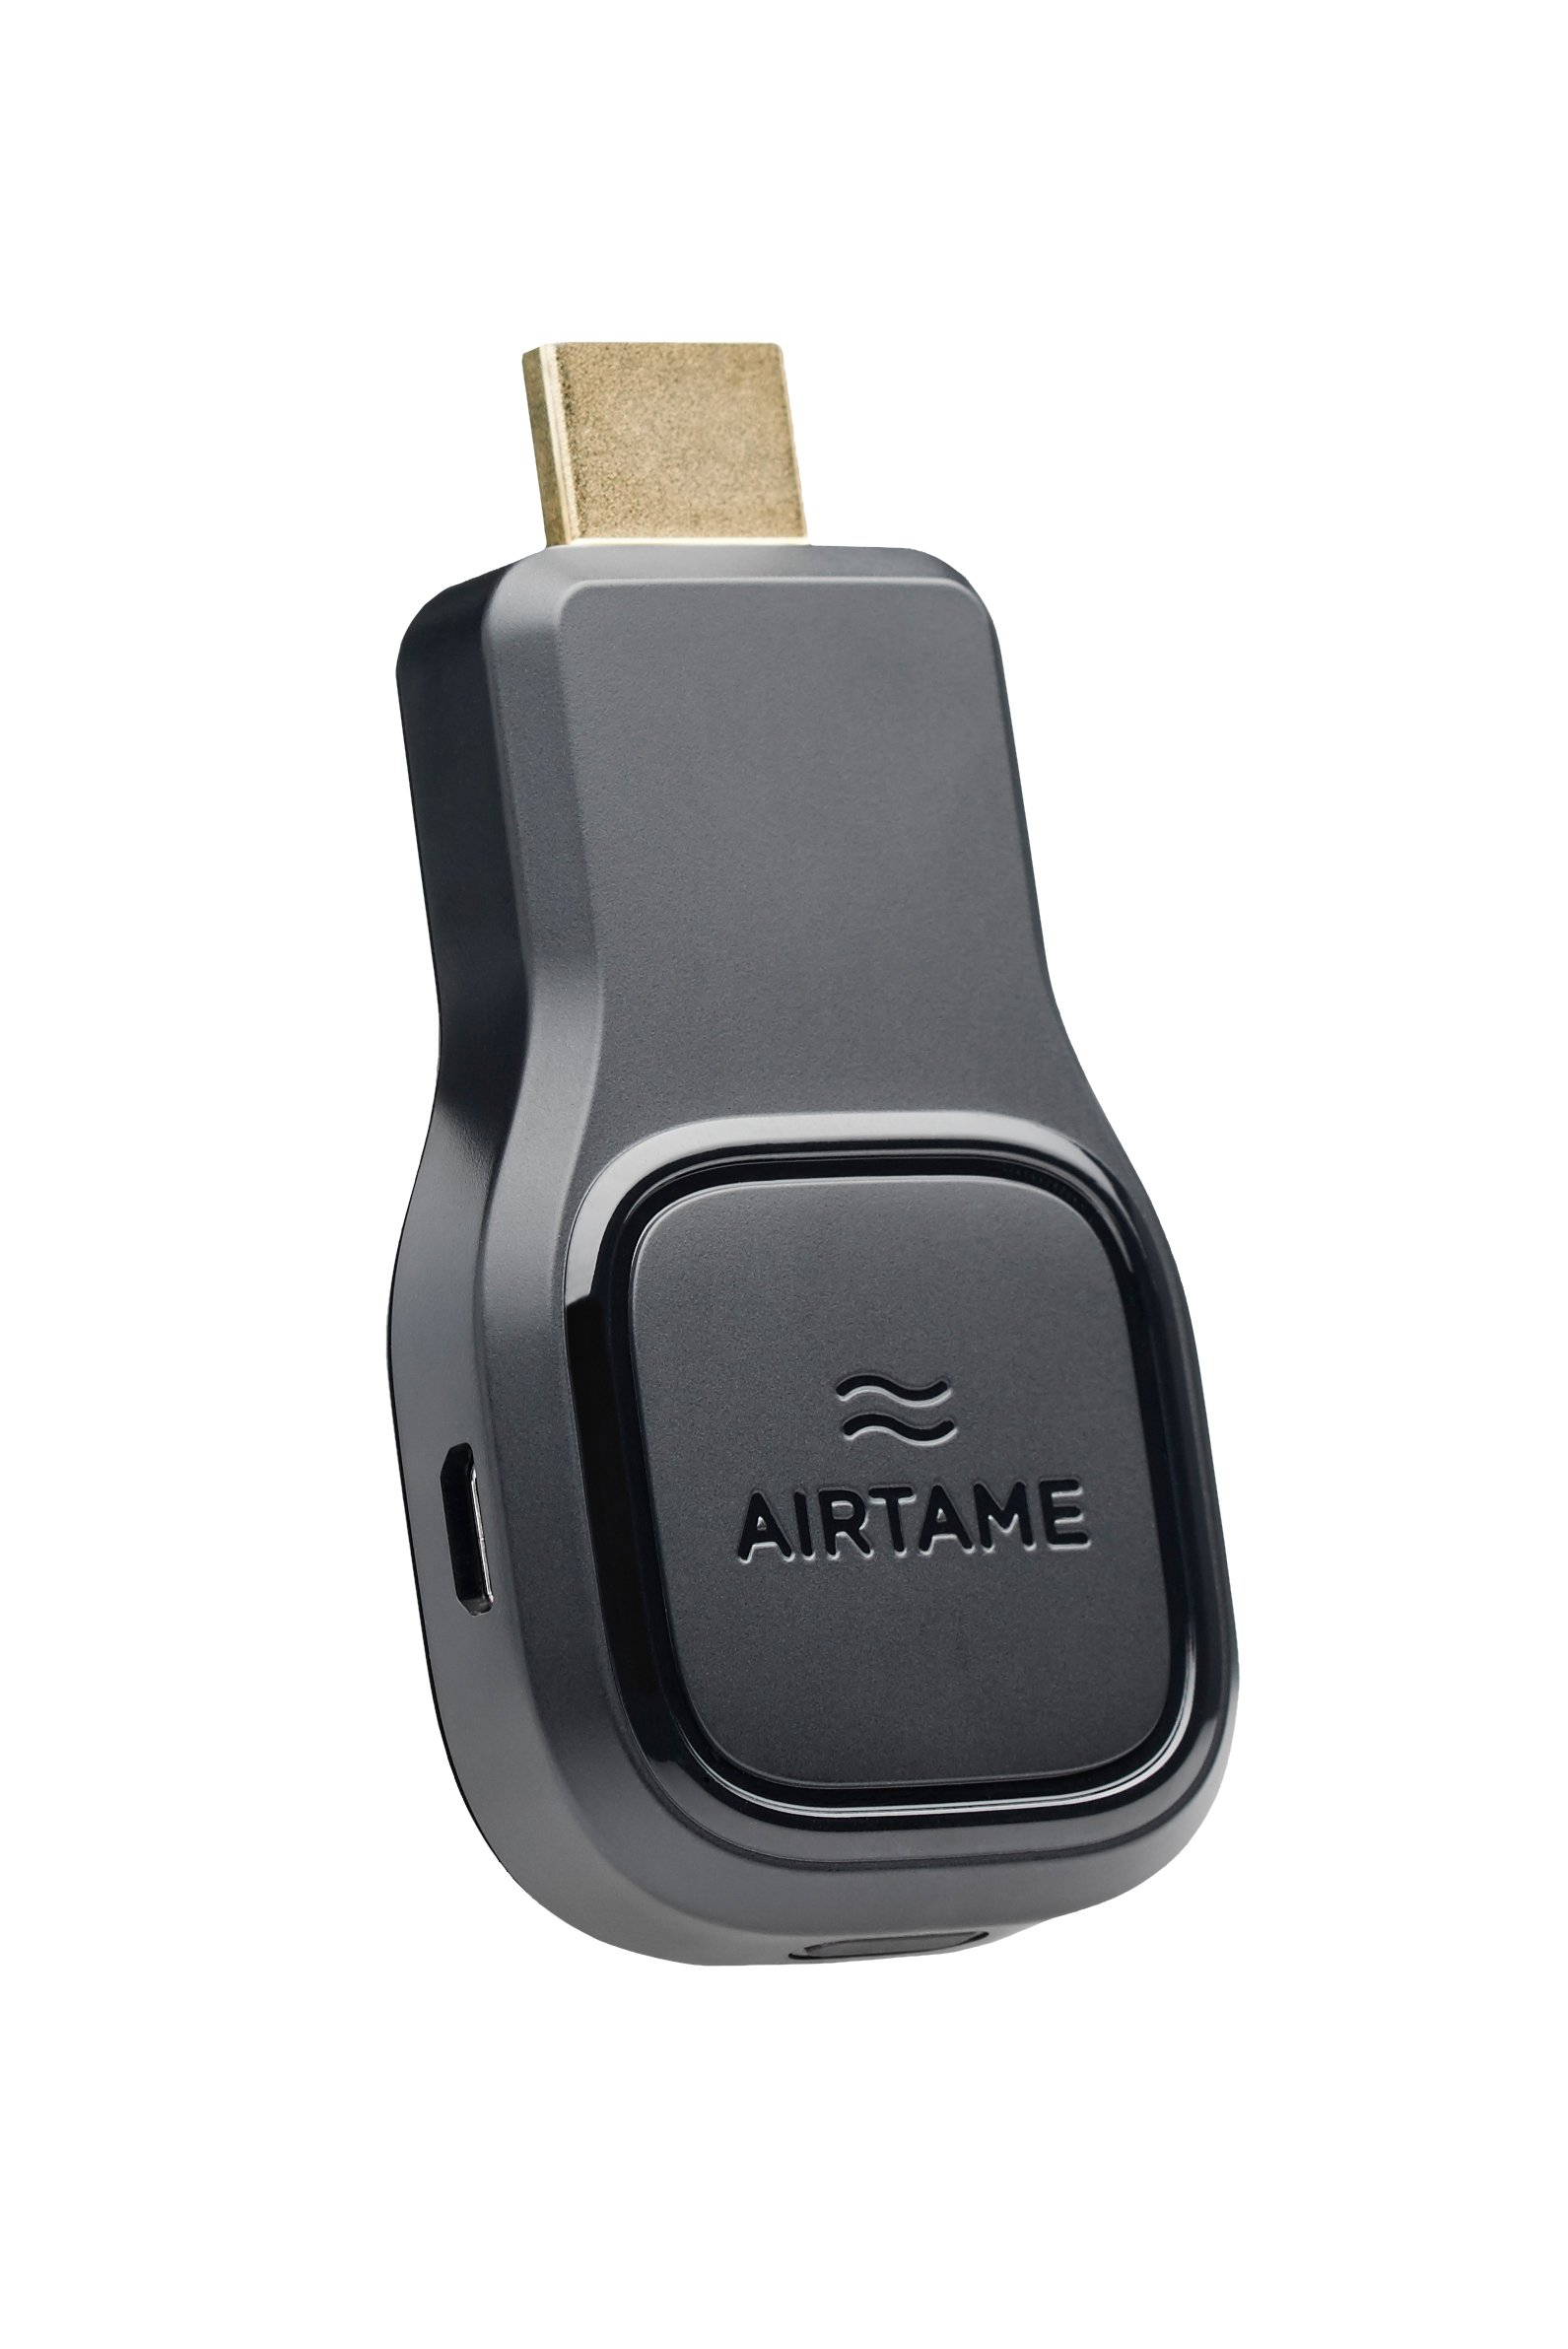 Airtame Wireless HDMI Display Adapter for Businesses & Education by AIRTAME